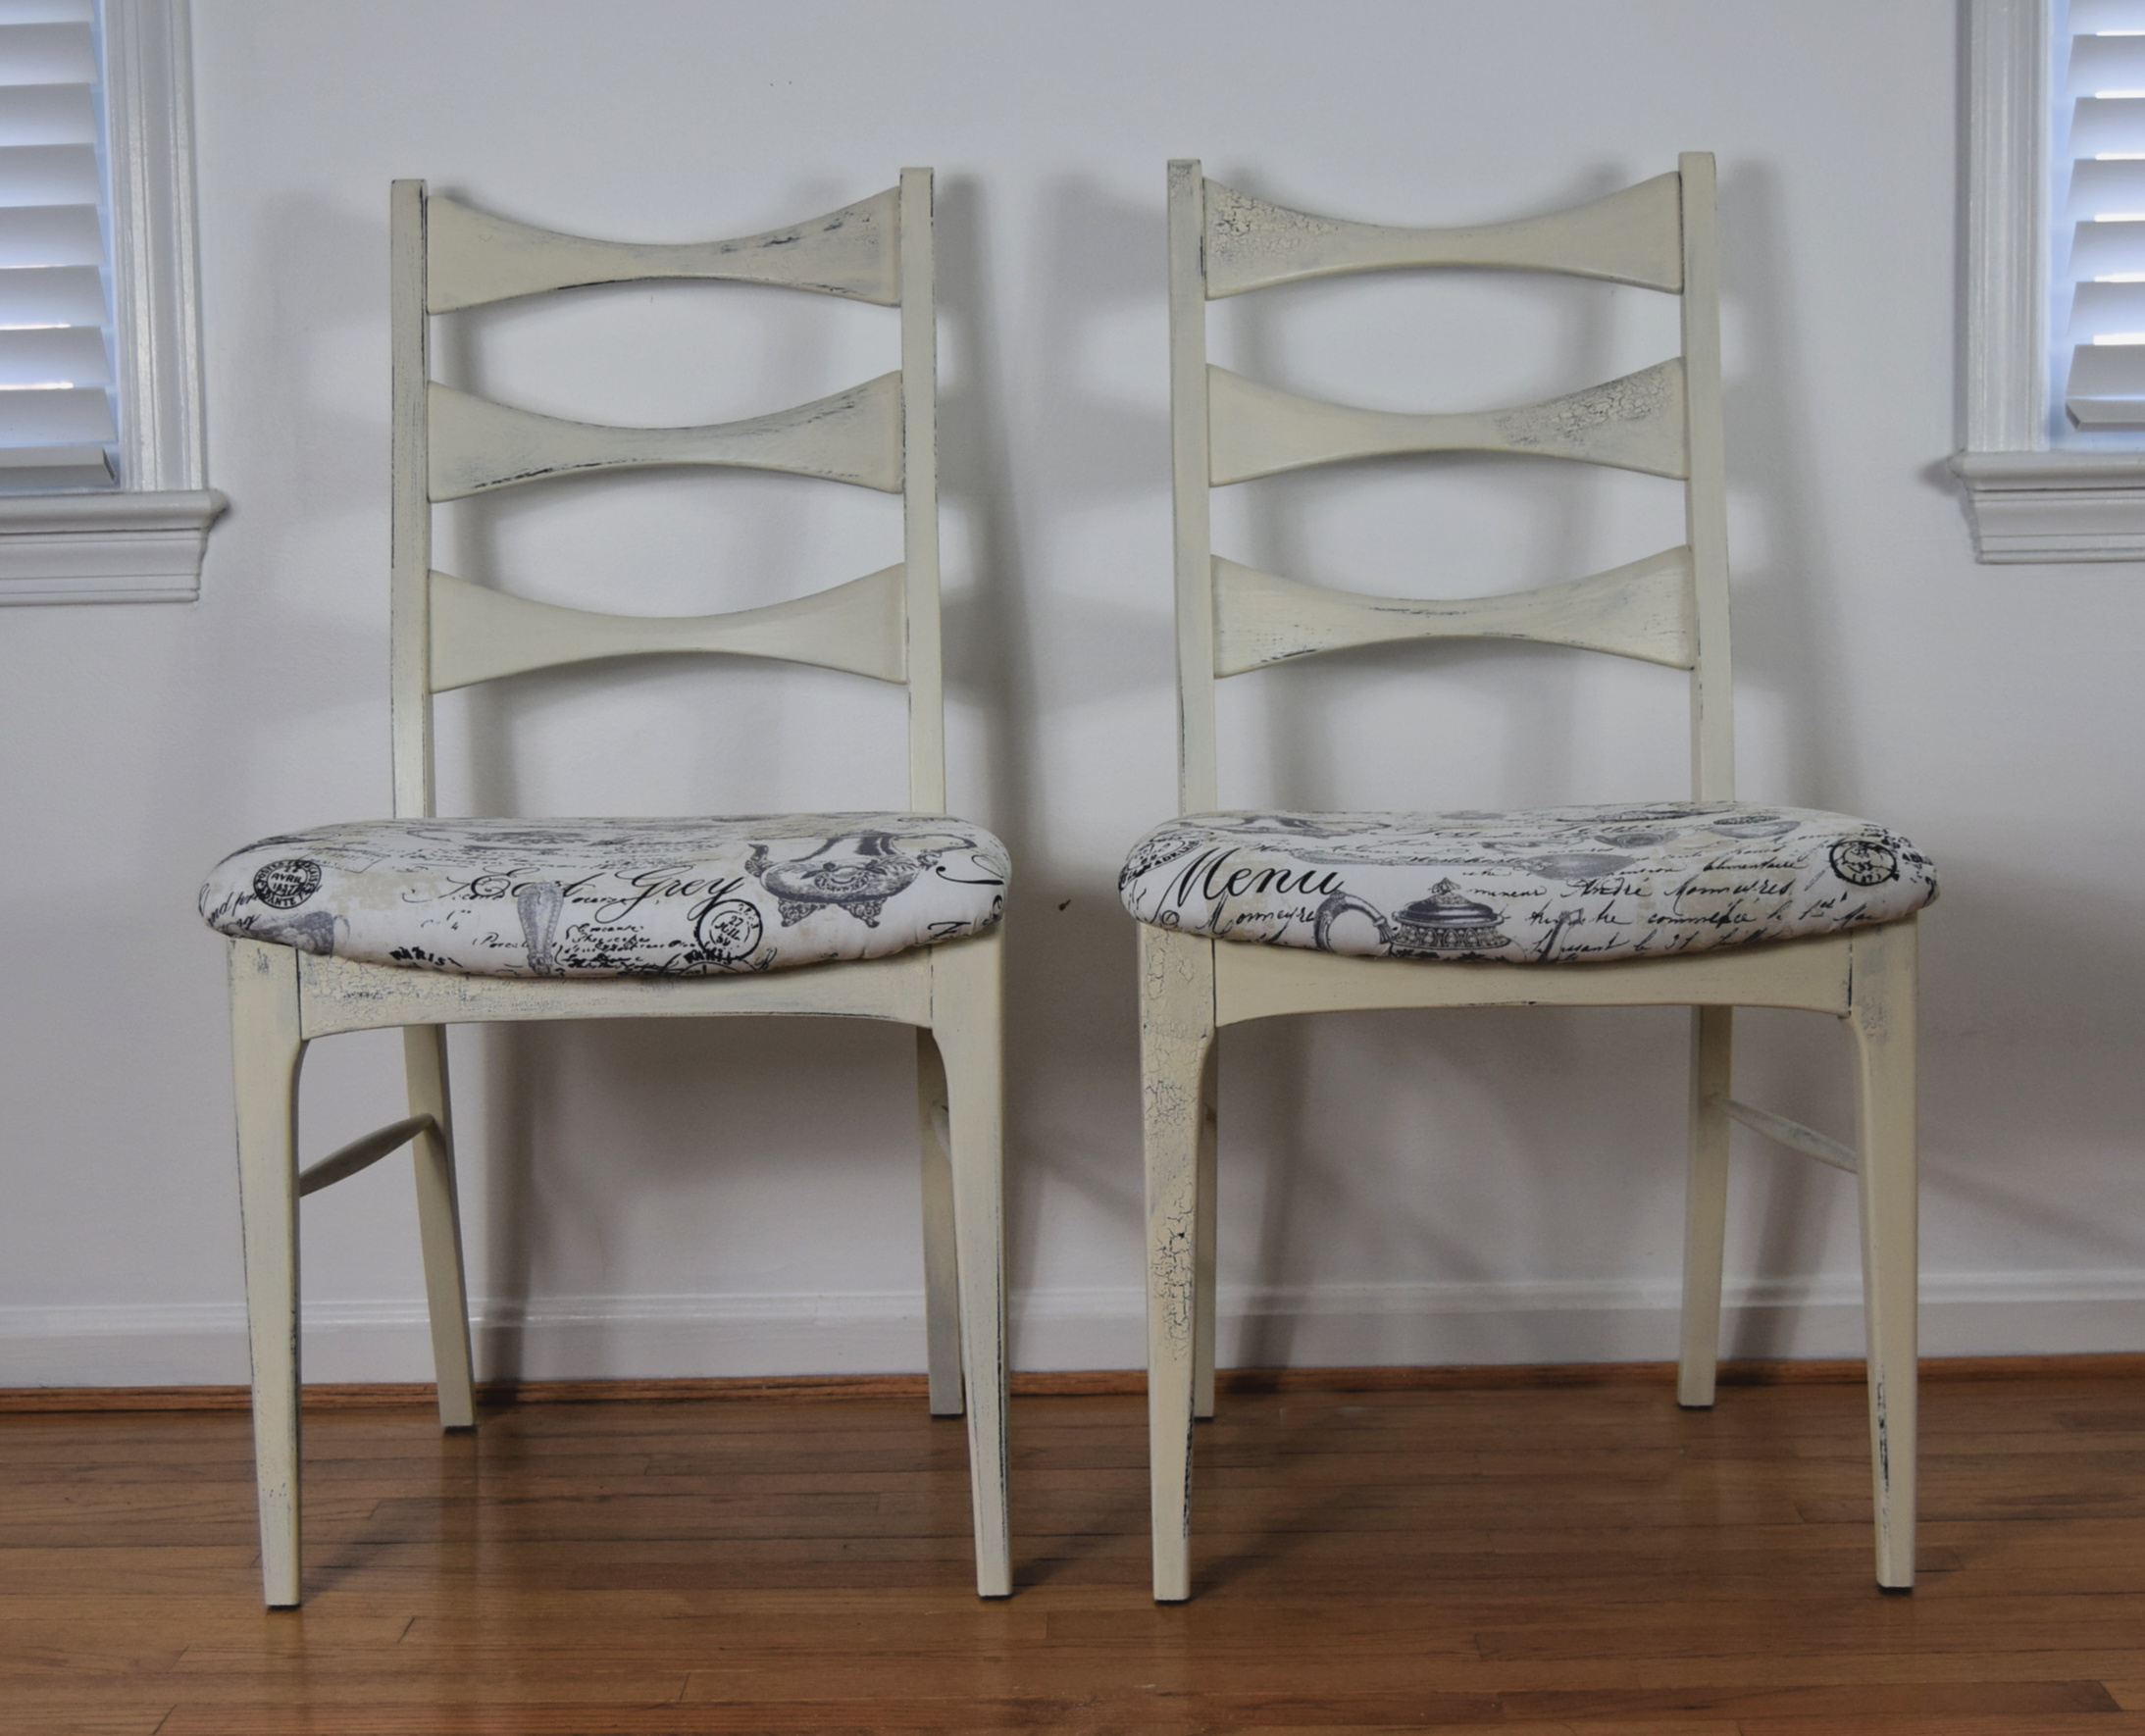 upcycled vintage bistro chairs